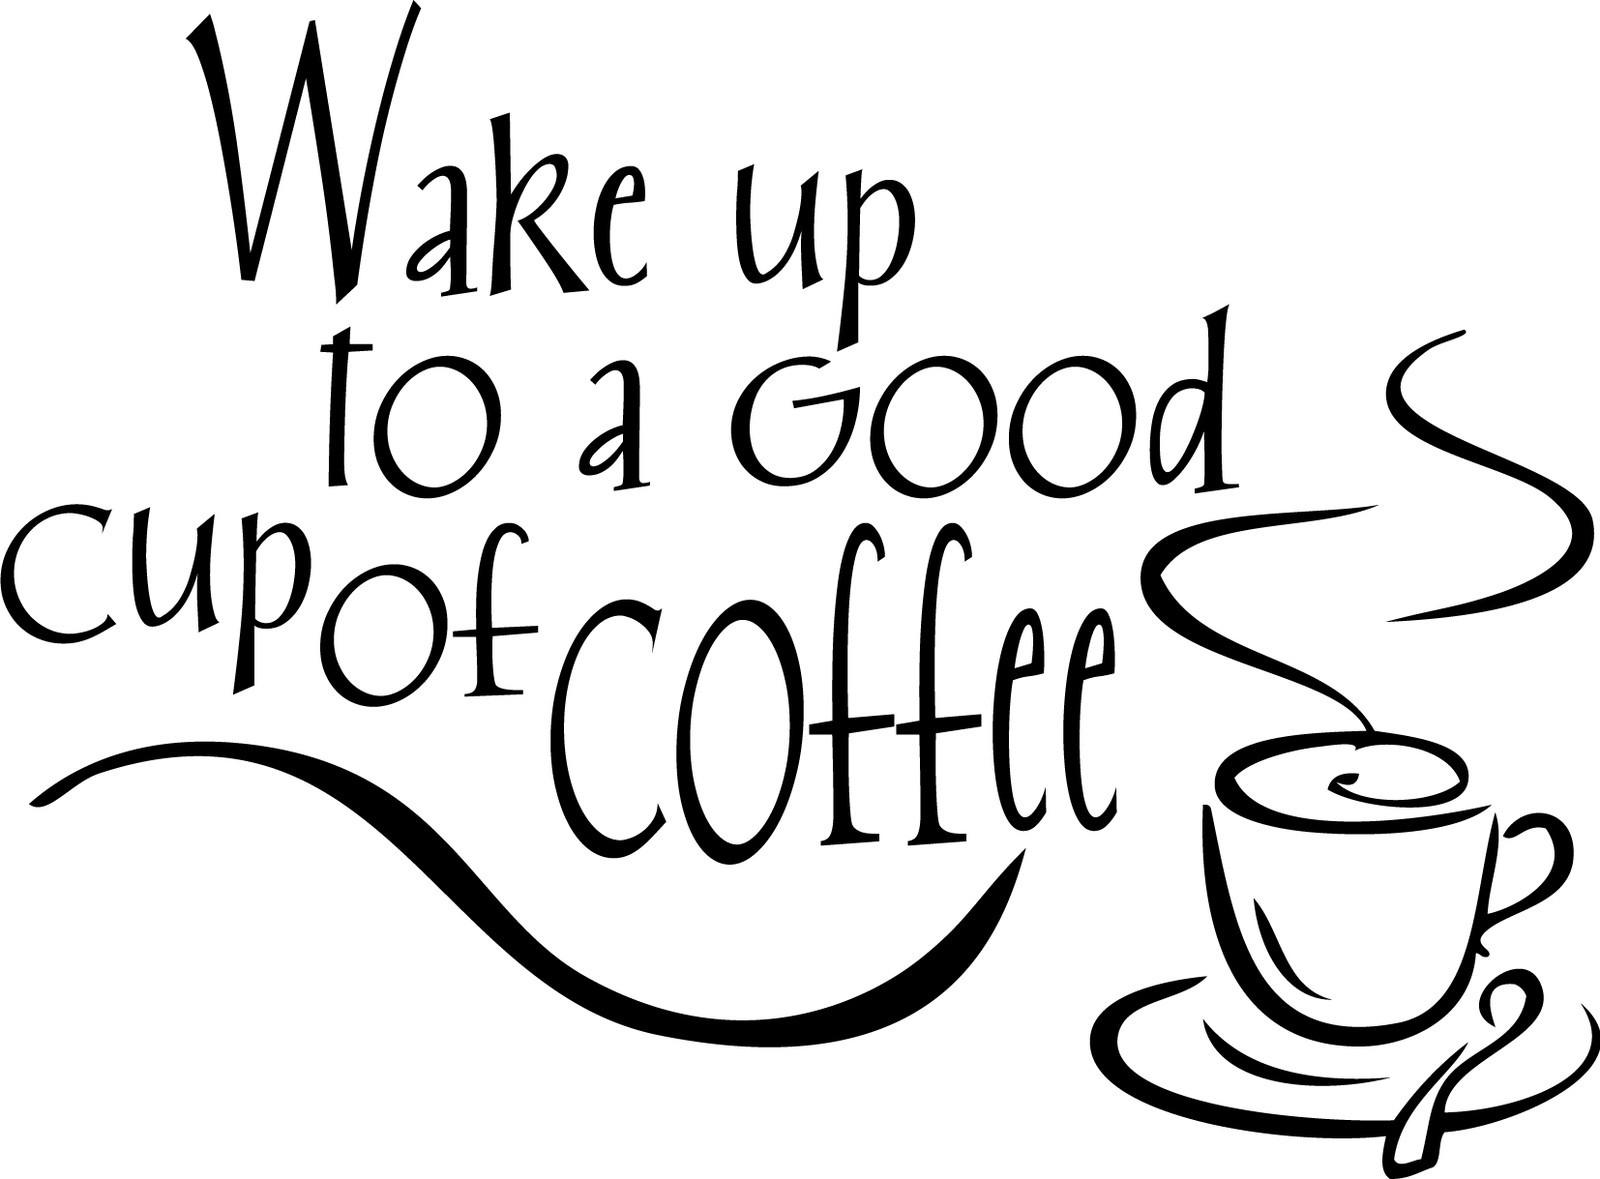 Wake Up To A Good Cup Of Coffee Decor Vinyl Wall Decal